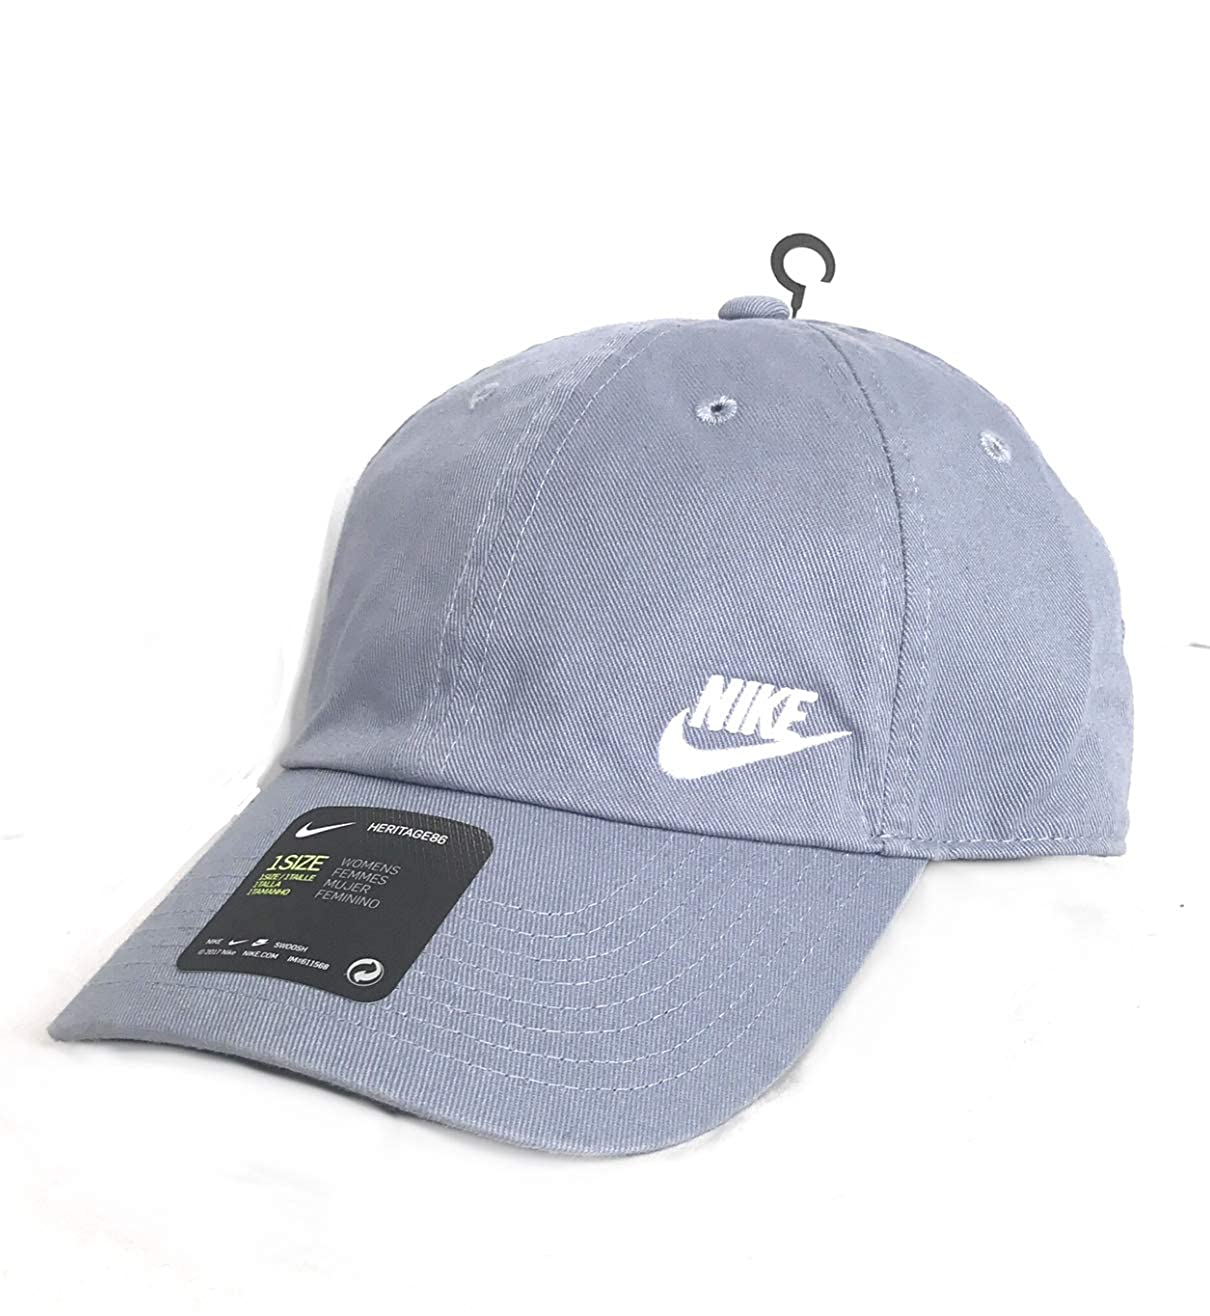 NIKE Women s Heritage 86 Swoosh Hat (One Size) (Slate Grey Purple) at  Amazon Men s Clothing store  7b5ffaf99e6